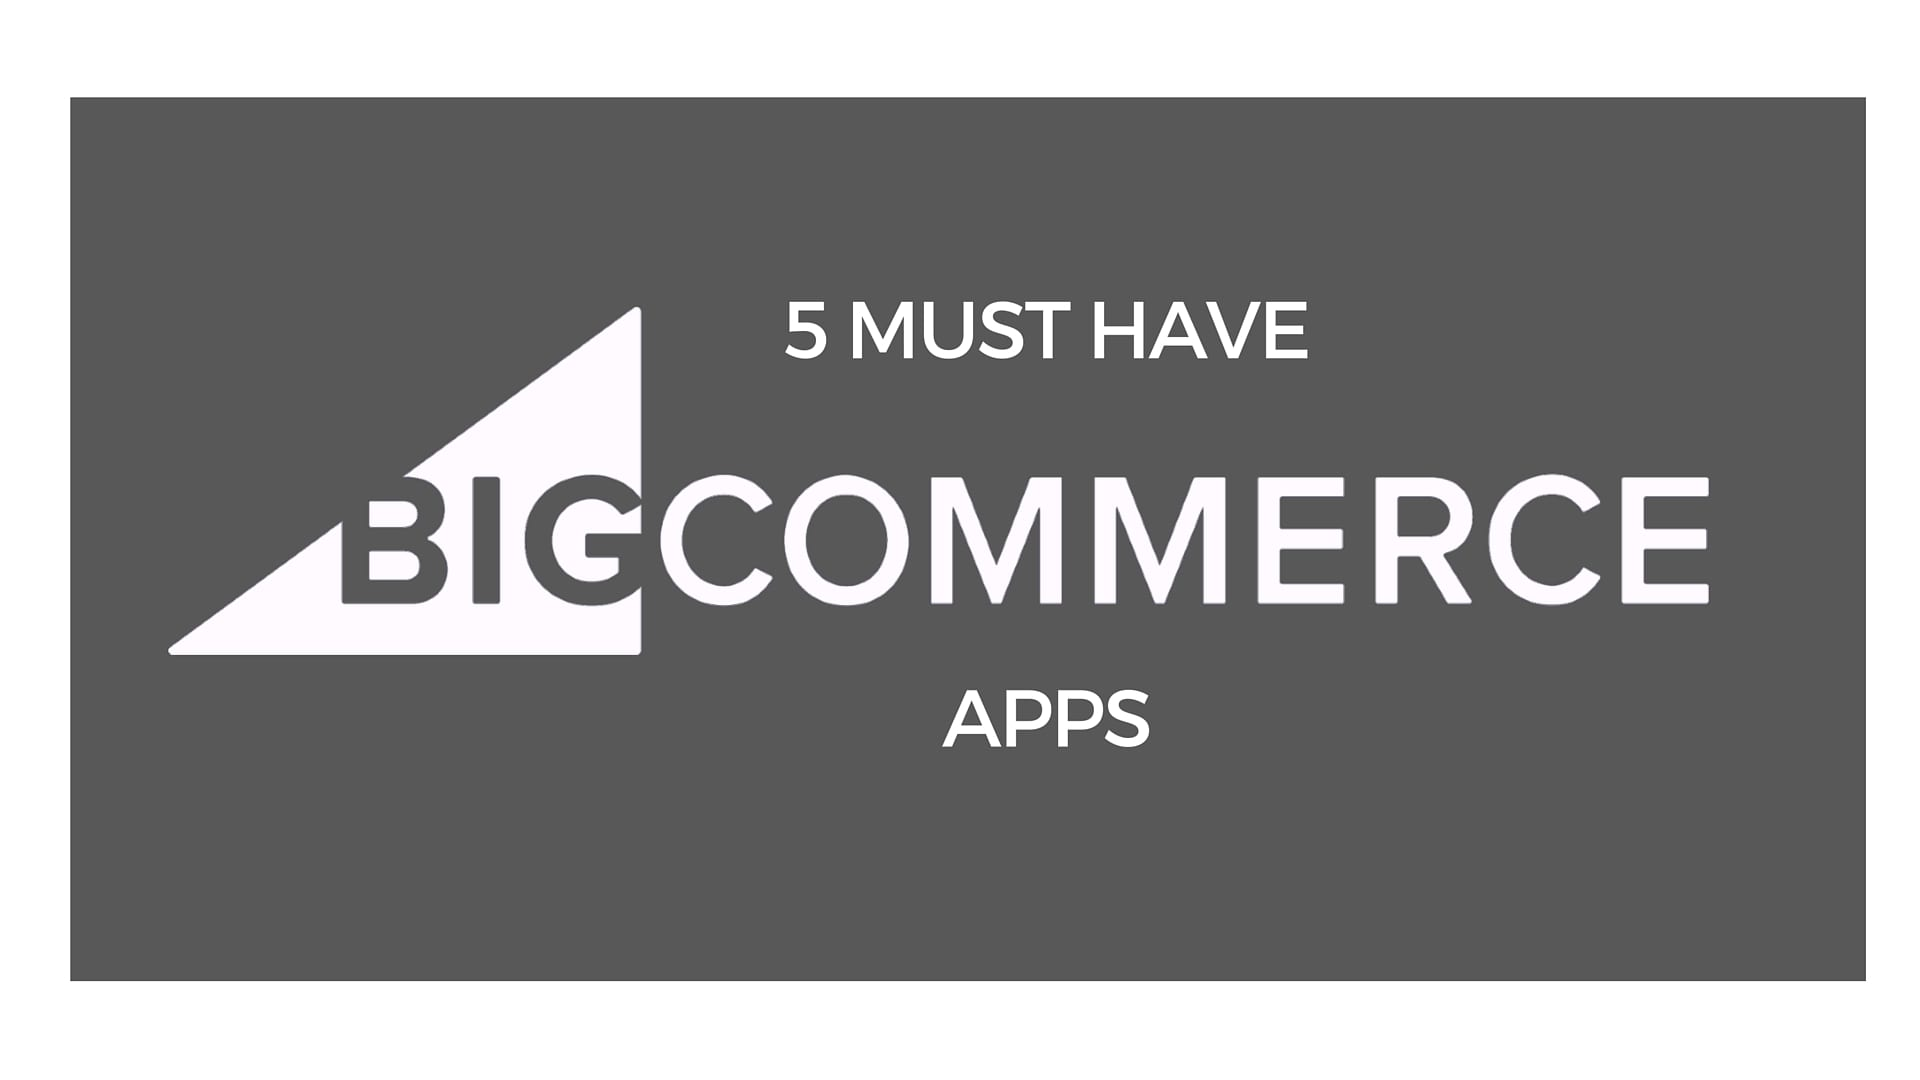 Must Have BigCommerce Apps header image